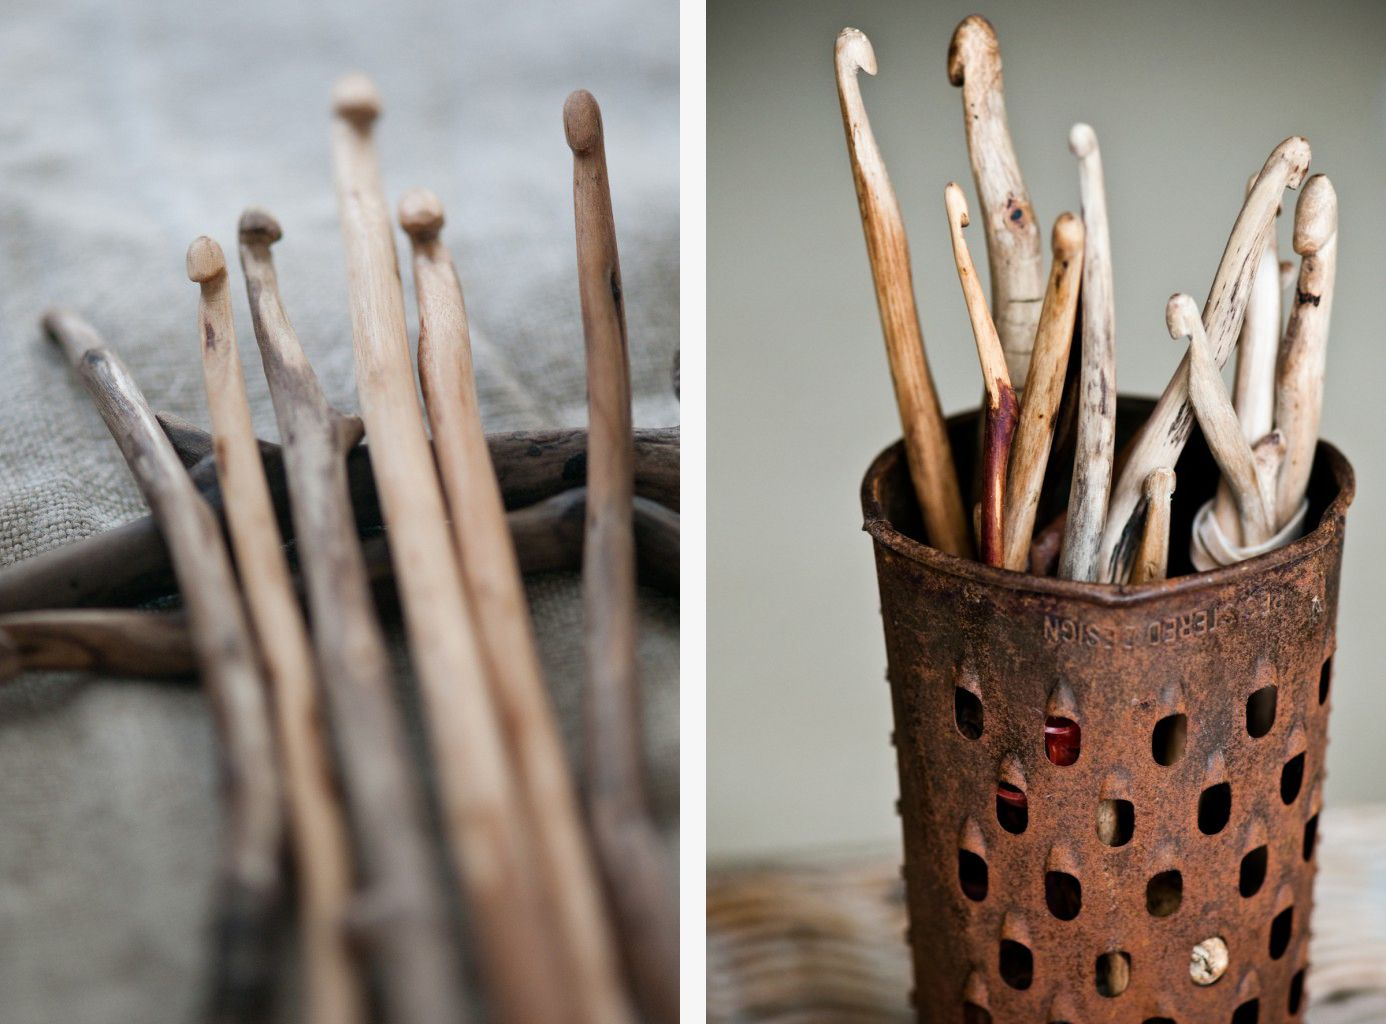 How to: Handmade Crochet Hooks Carved from Wooden Sticks #crochethooks